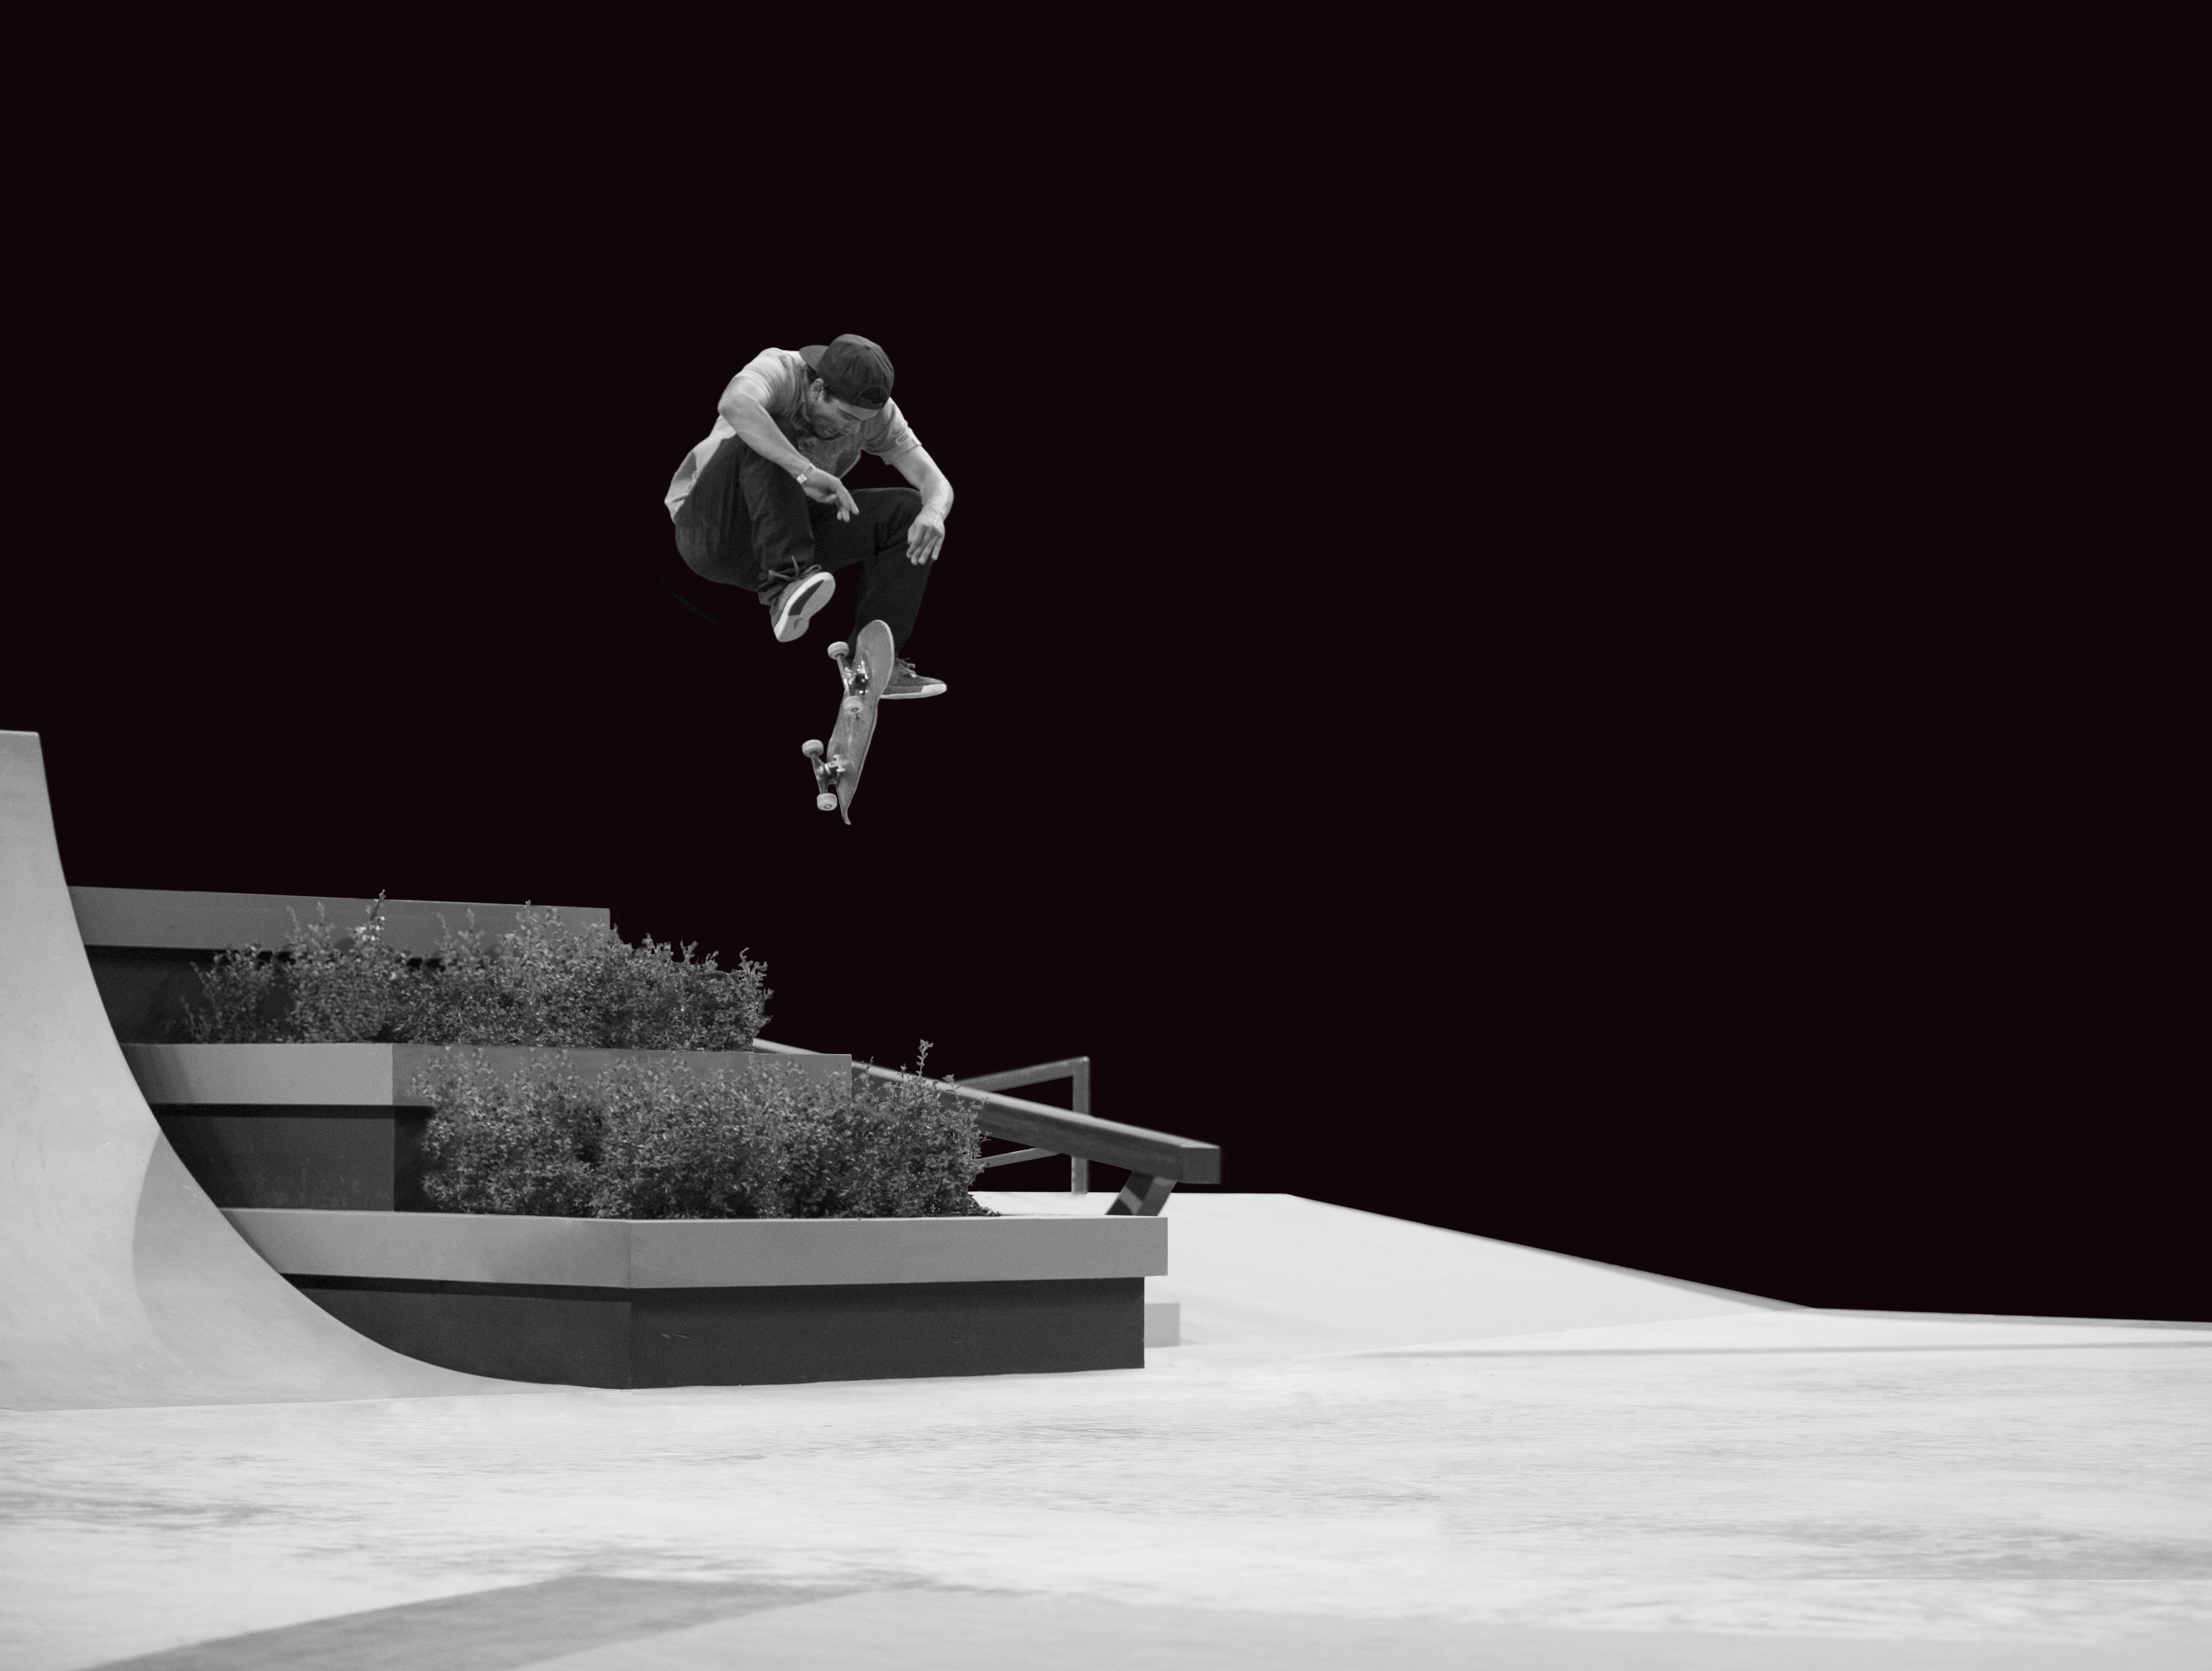 LO · HI. Four Nike SB Riders to Battle it Out at SLS Nike SB World Tour  Finale